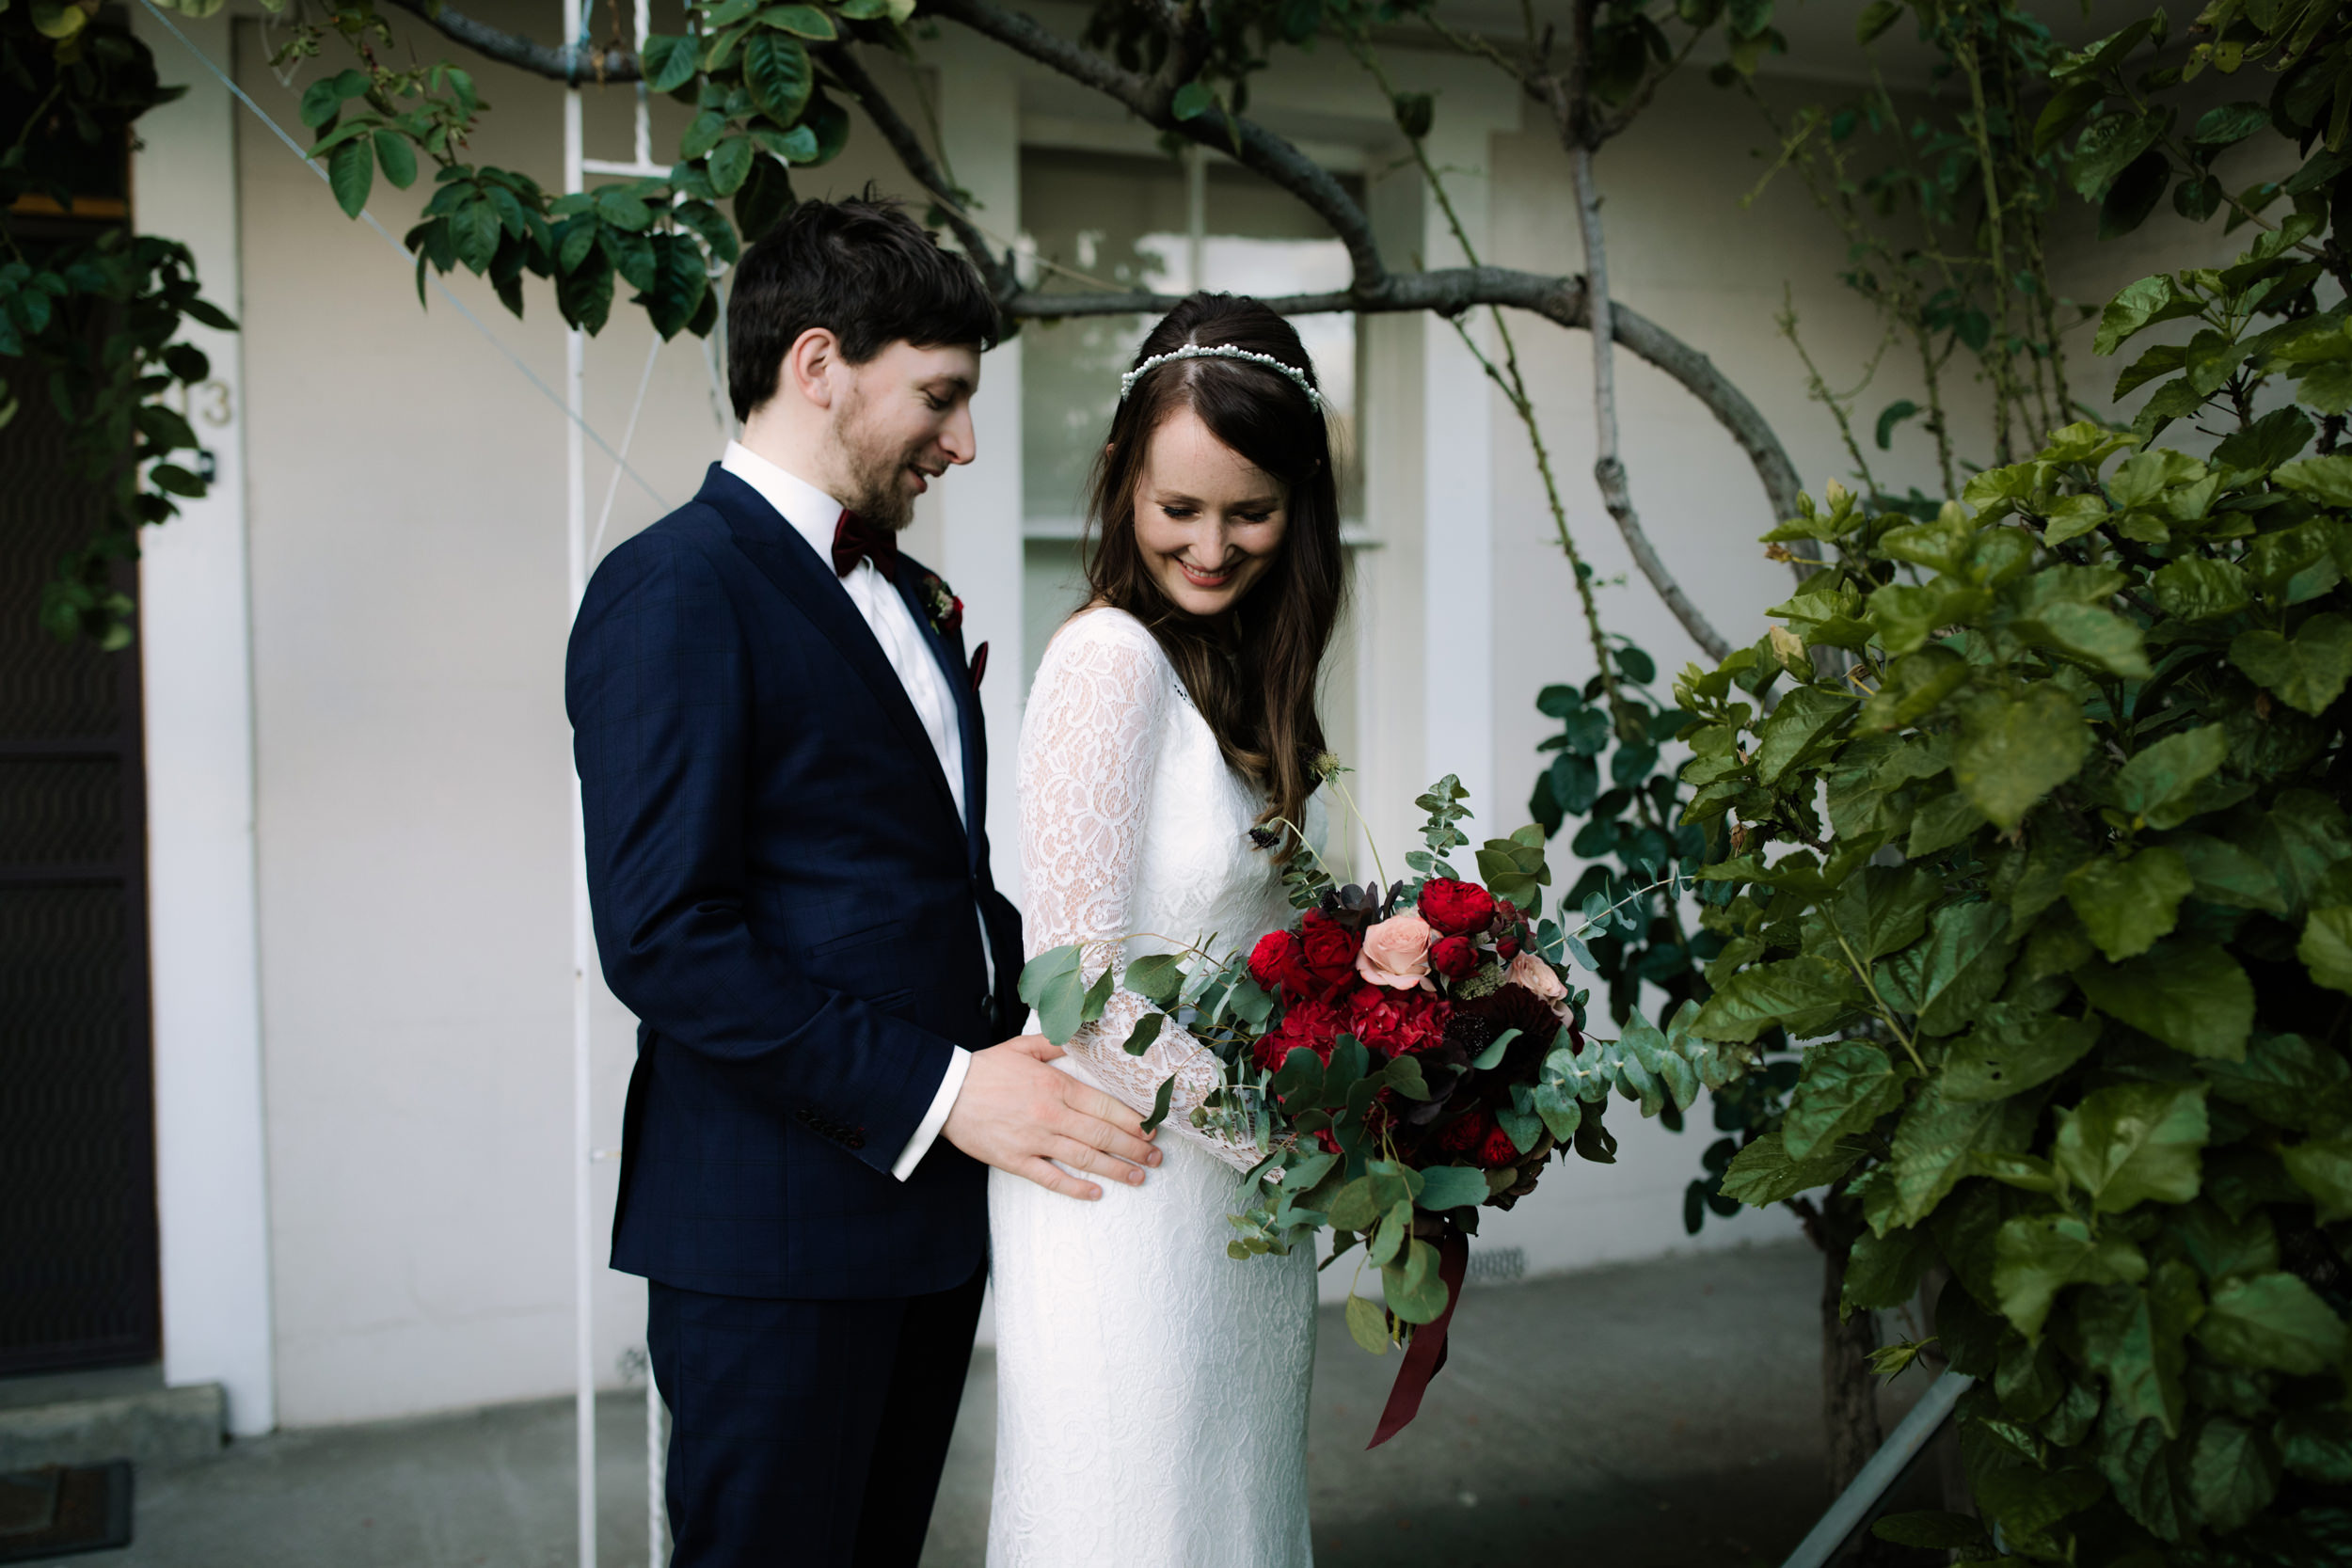 I_Got_You_Babe_Weddings_Emily_Matt_Rupert_Glasshaus_Melbourne0164.JPG